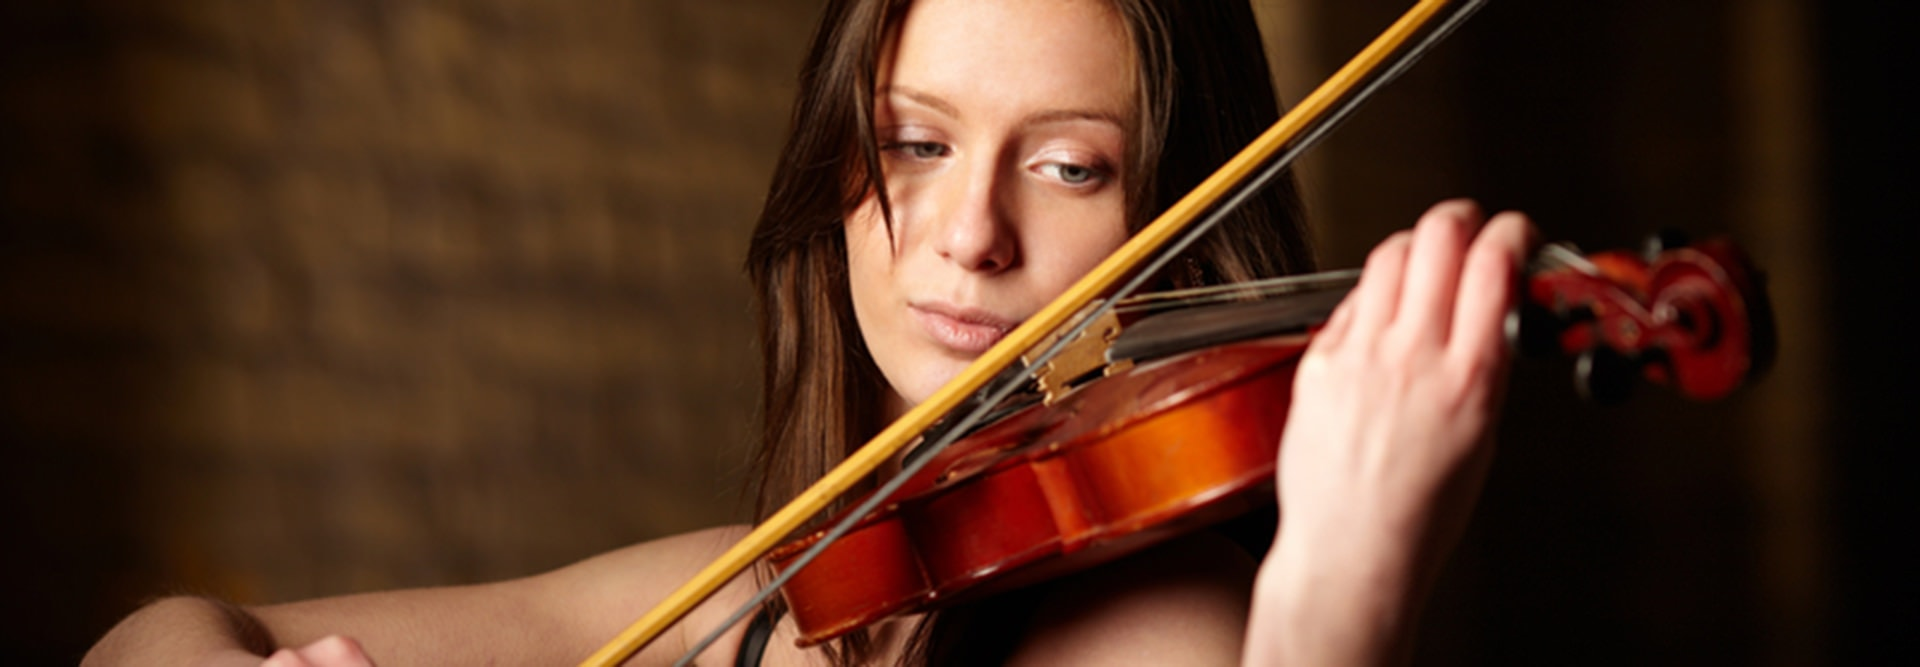 learn to play violin, how to play violin, violin lessons